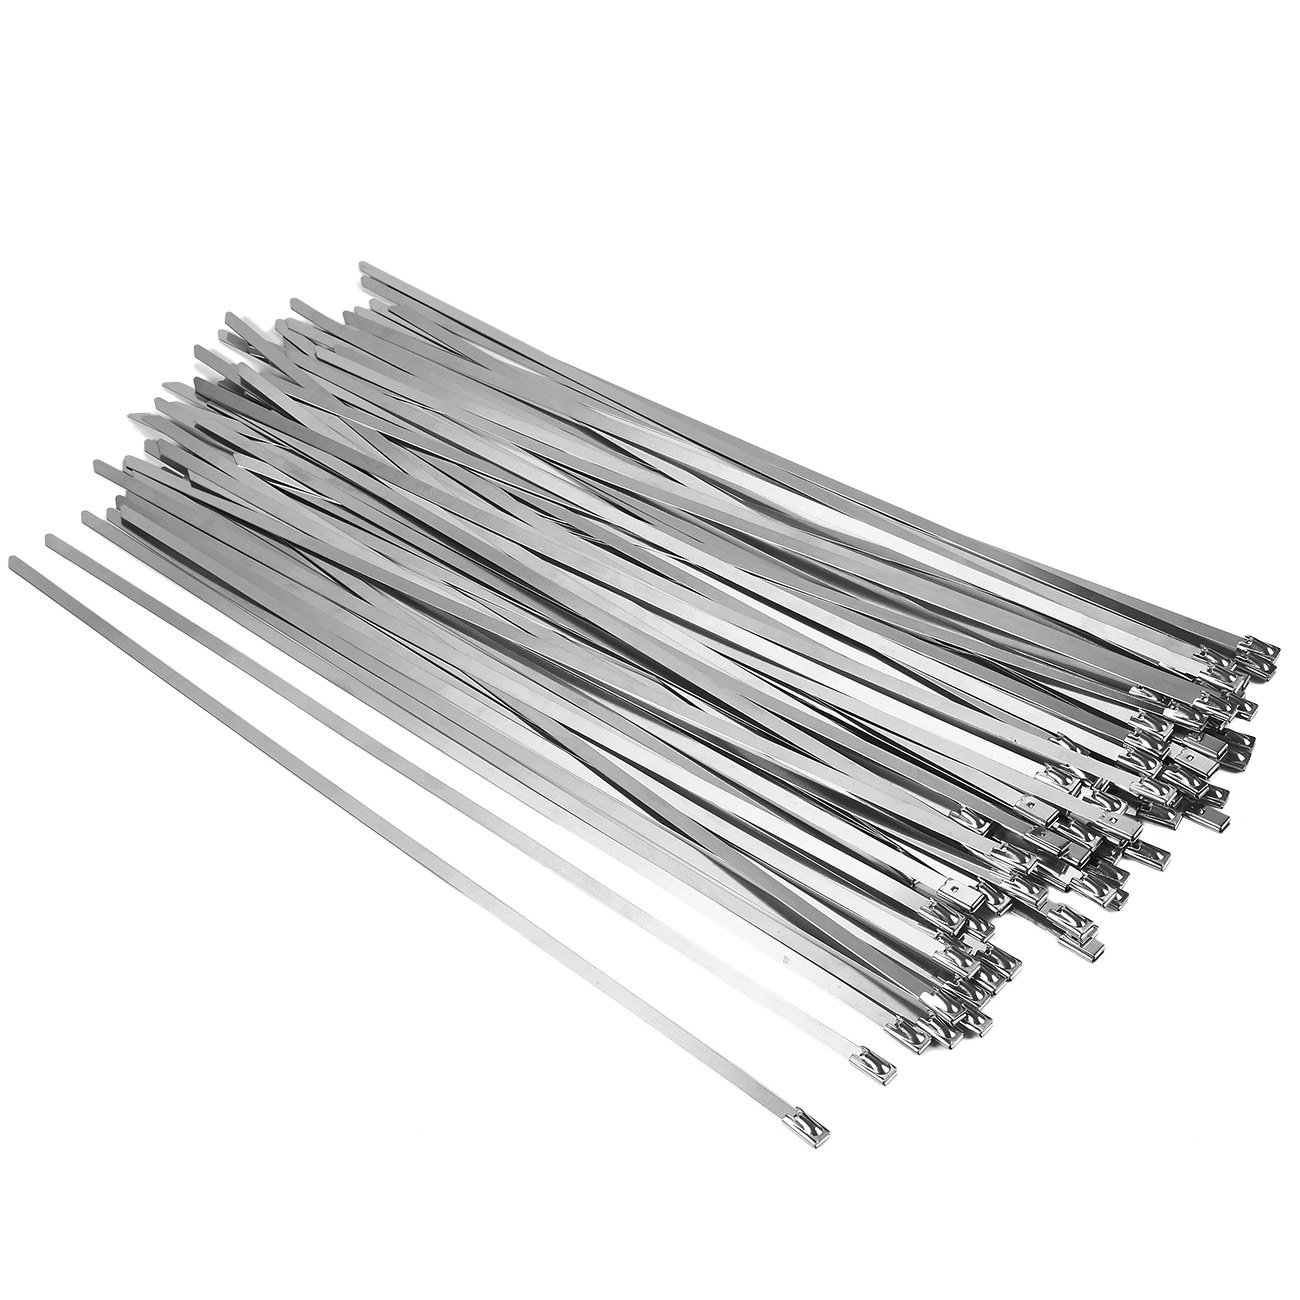 Stainless Steel Zip Ties - 100-Pack 12 Inches Metal Zip Ties, Heat-Resistant Exhaust Wrap, Multi-Purpose Locking Cable, 12 x 0.17 Inches